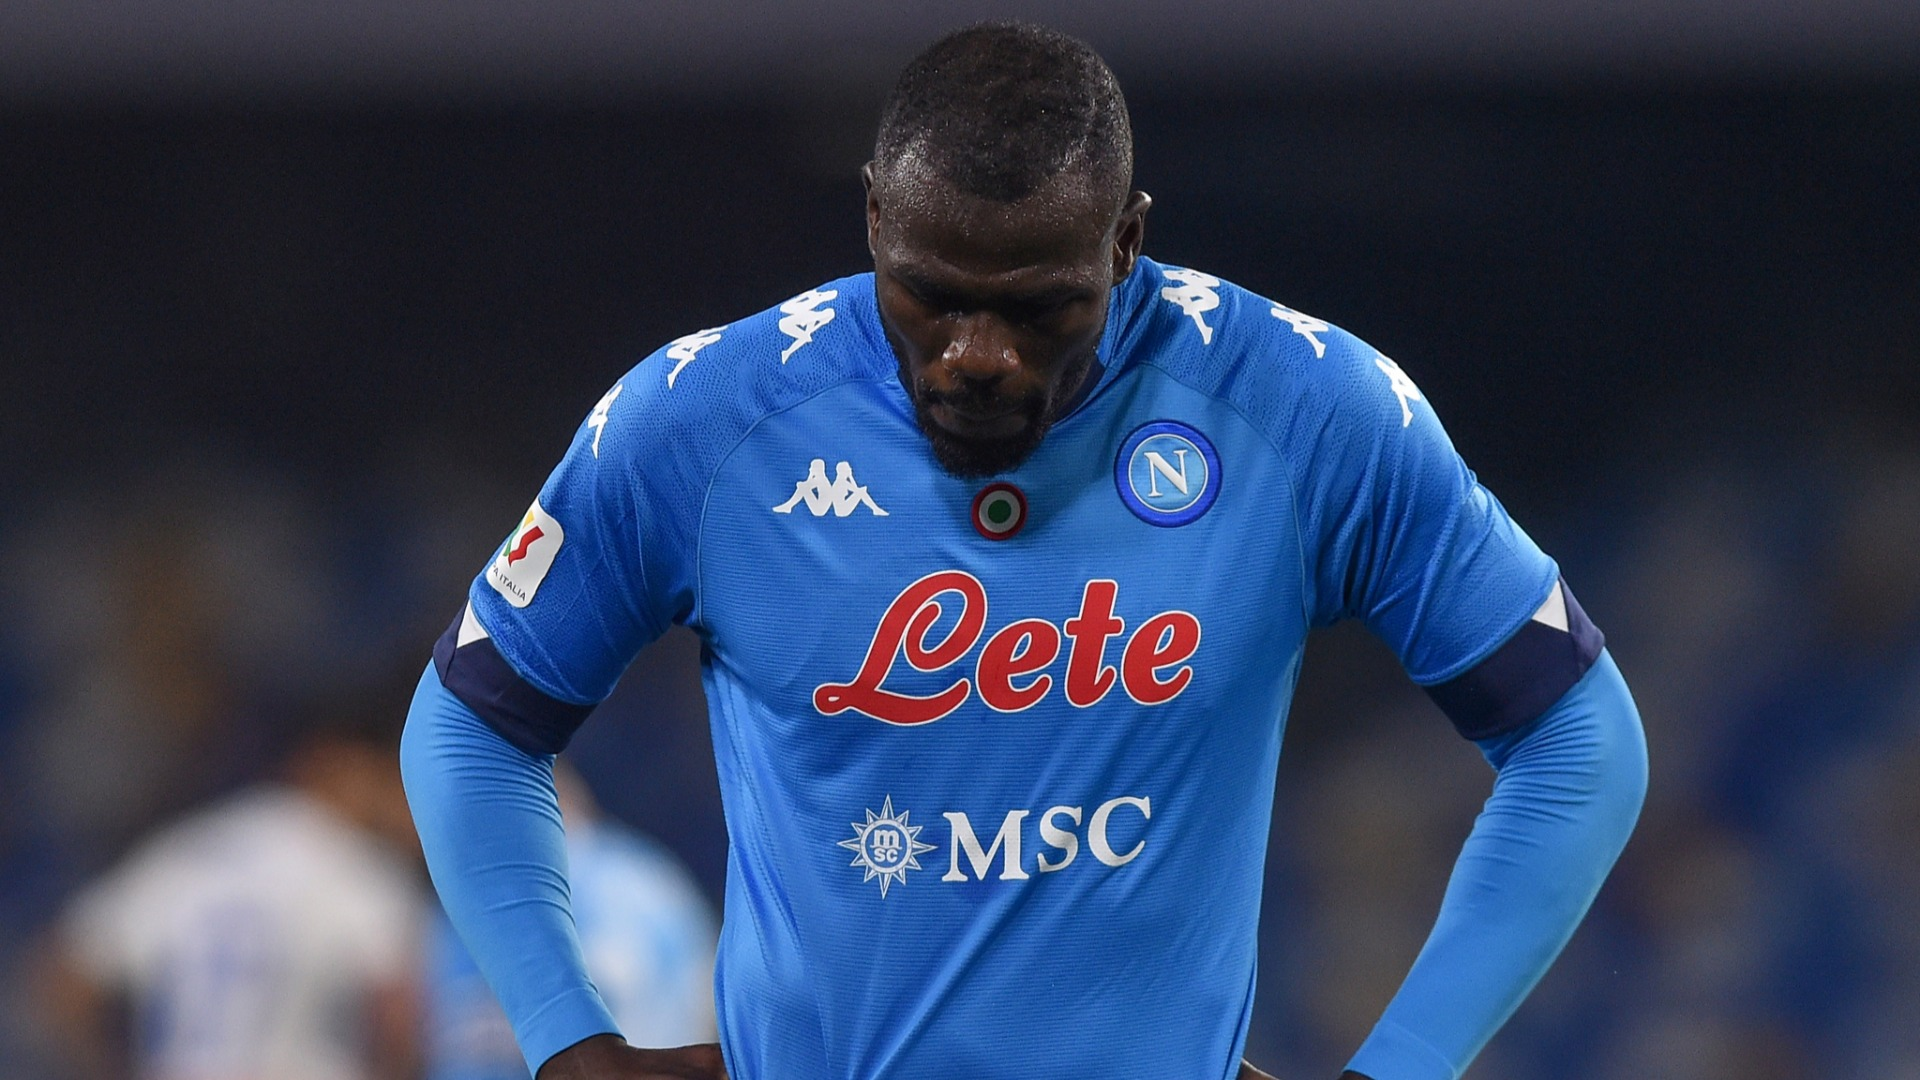 Conte: Koulibaly one of the best - I wanted him at Chelsea